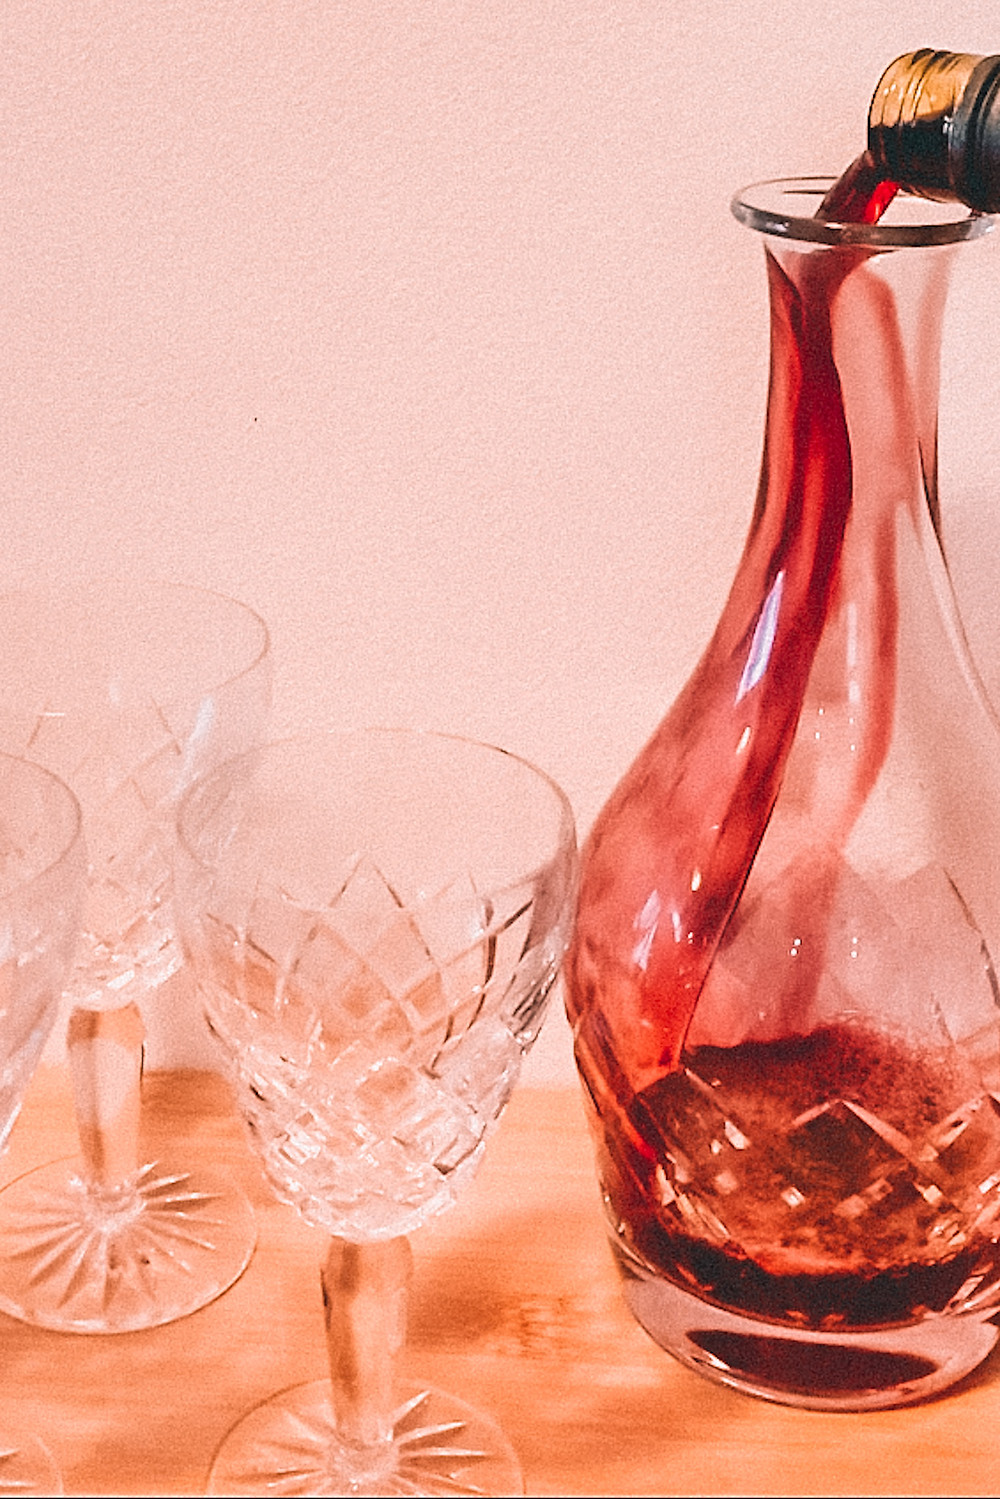 Decanting wine into a crystal decanter